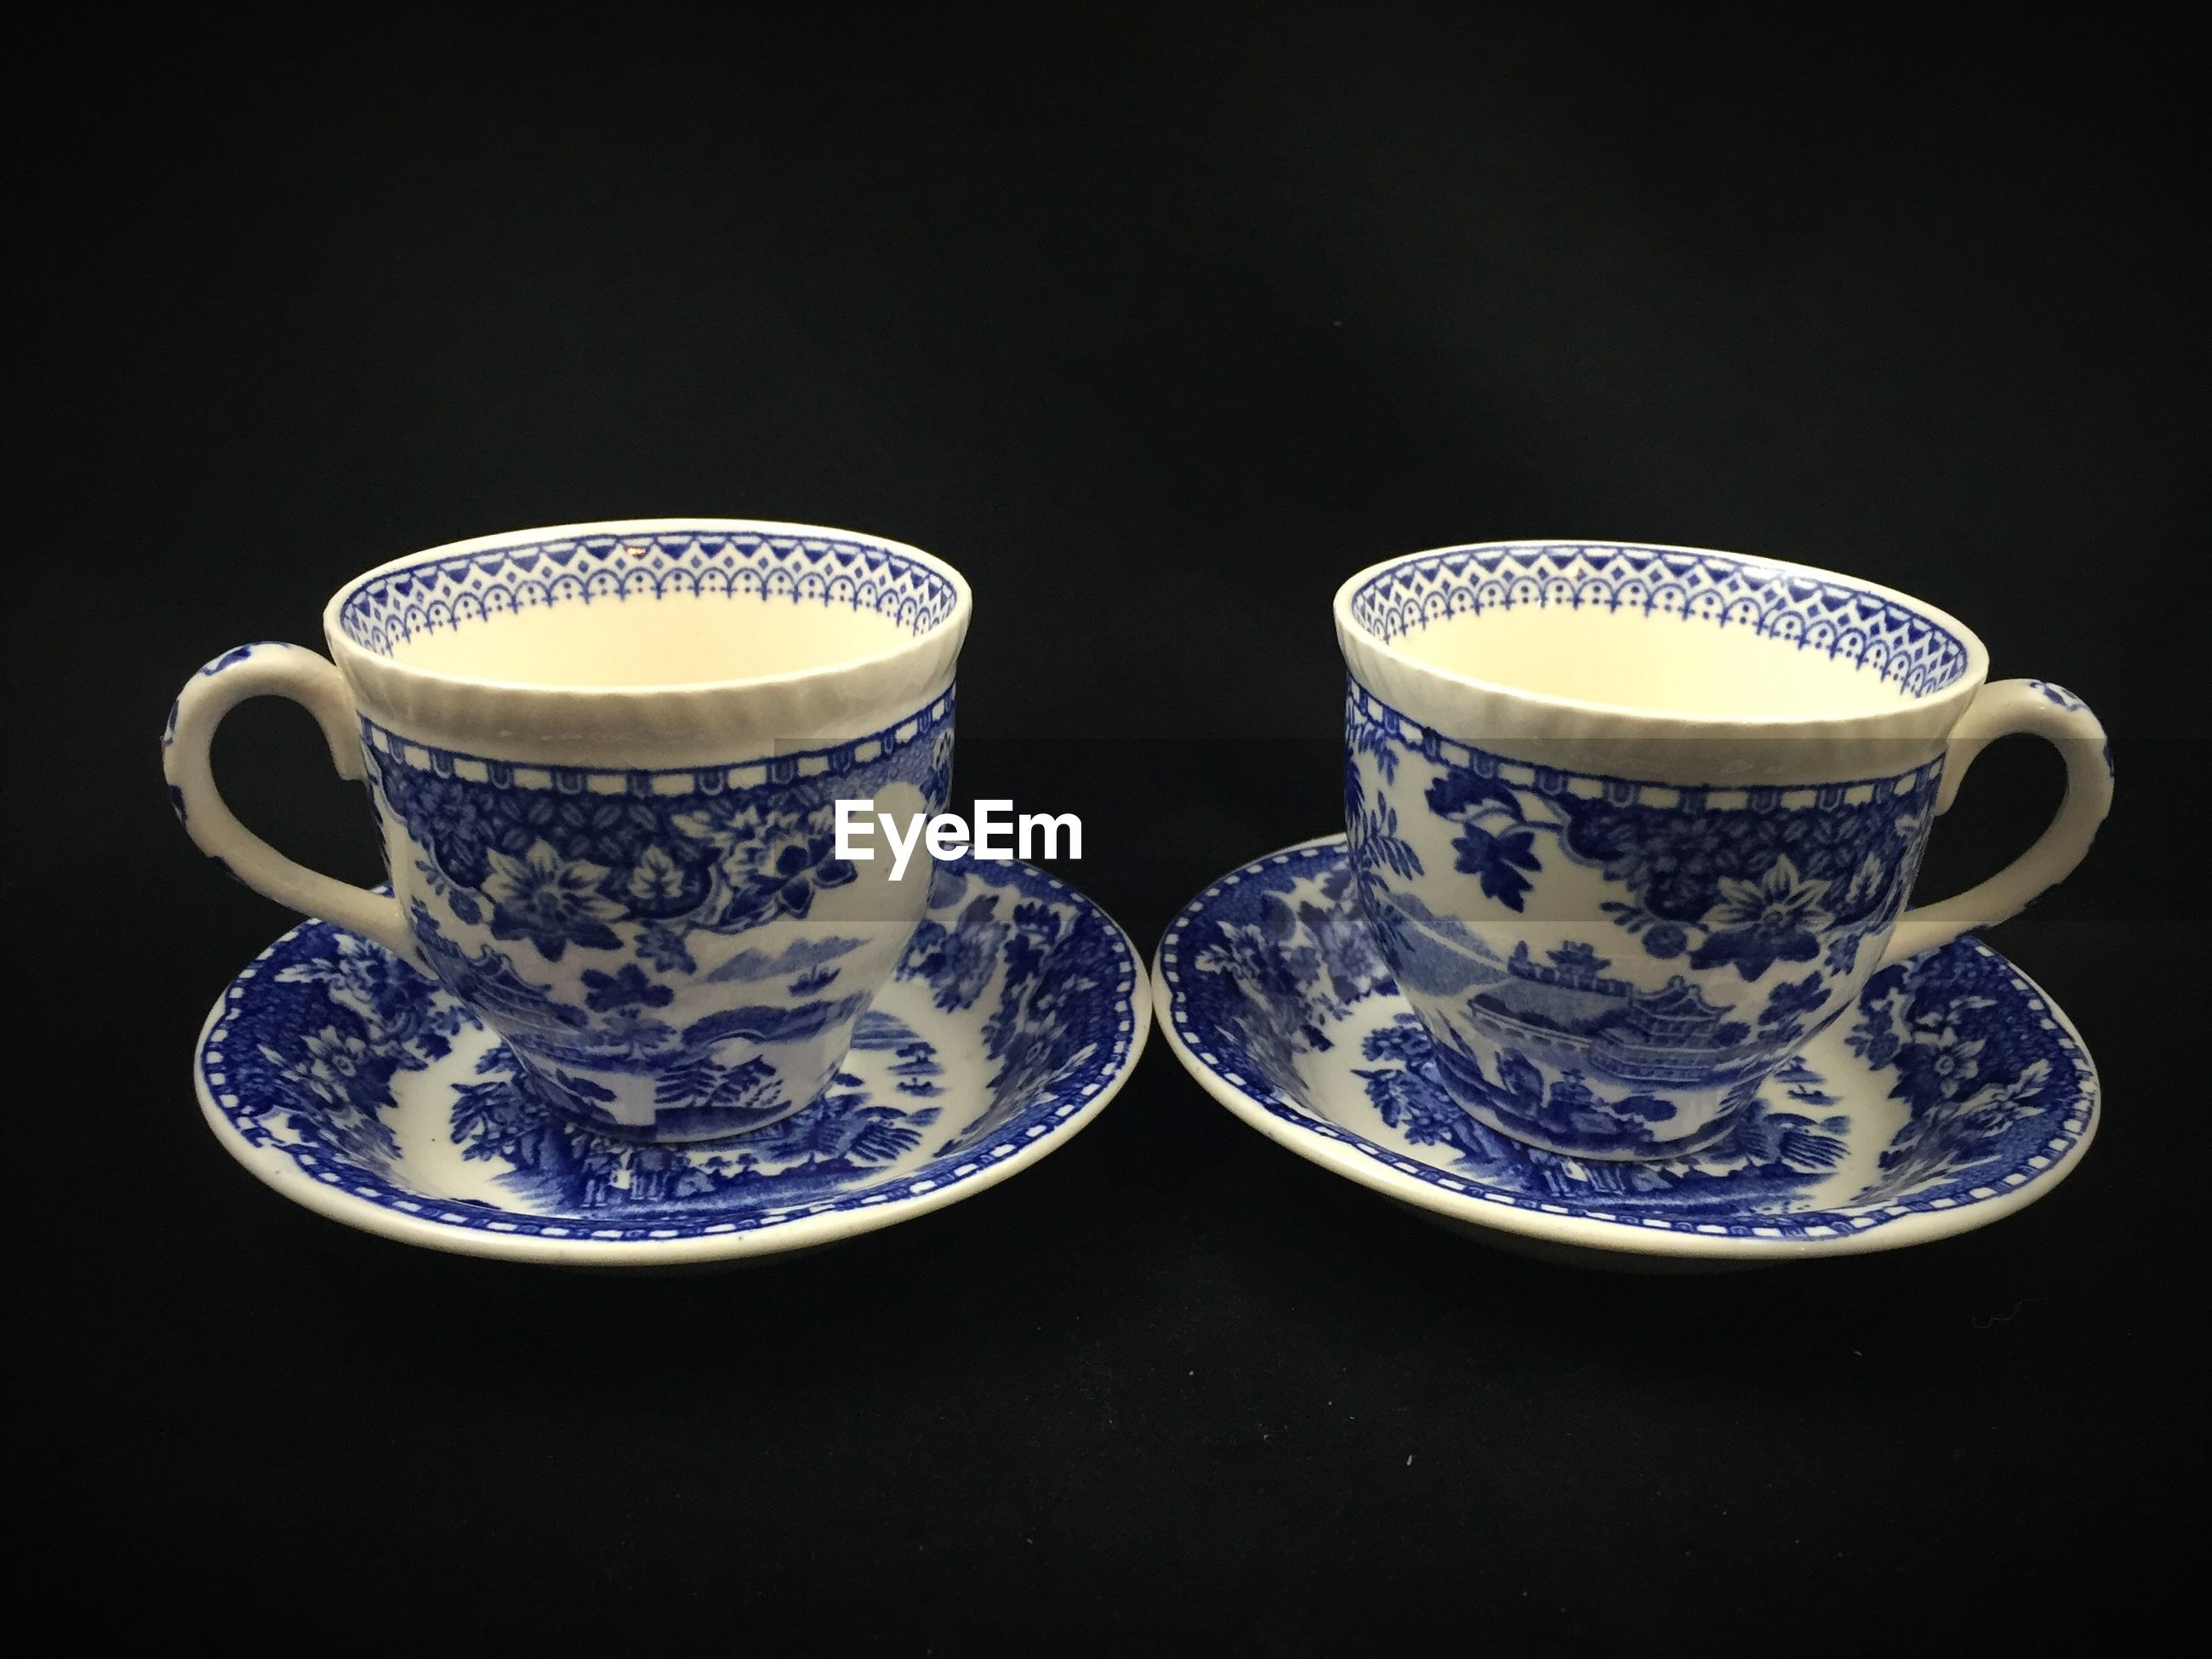 CLOSE-UP OF TEA CUP AND TABLE